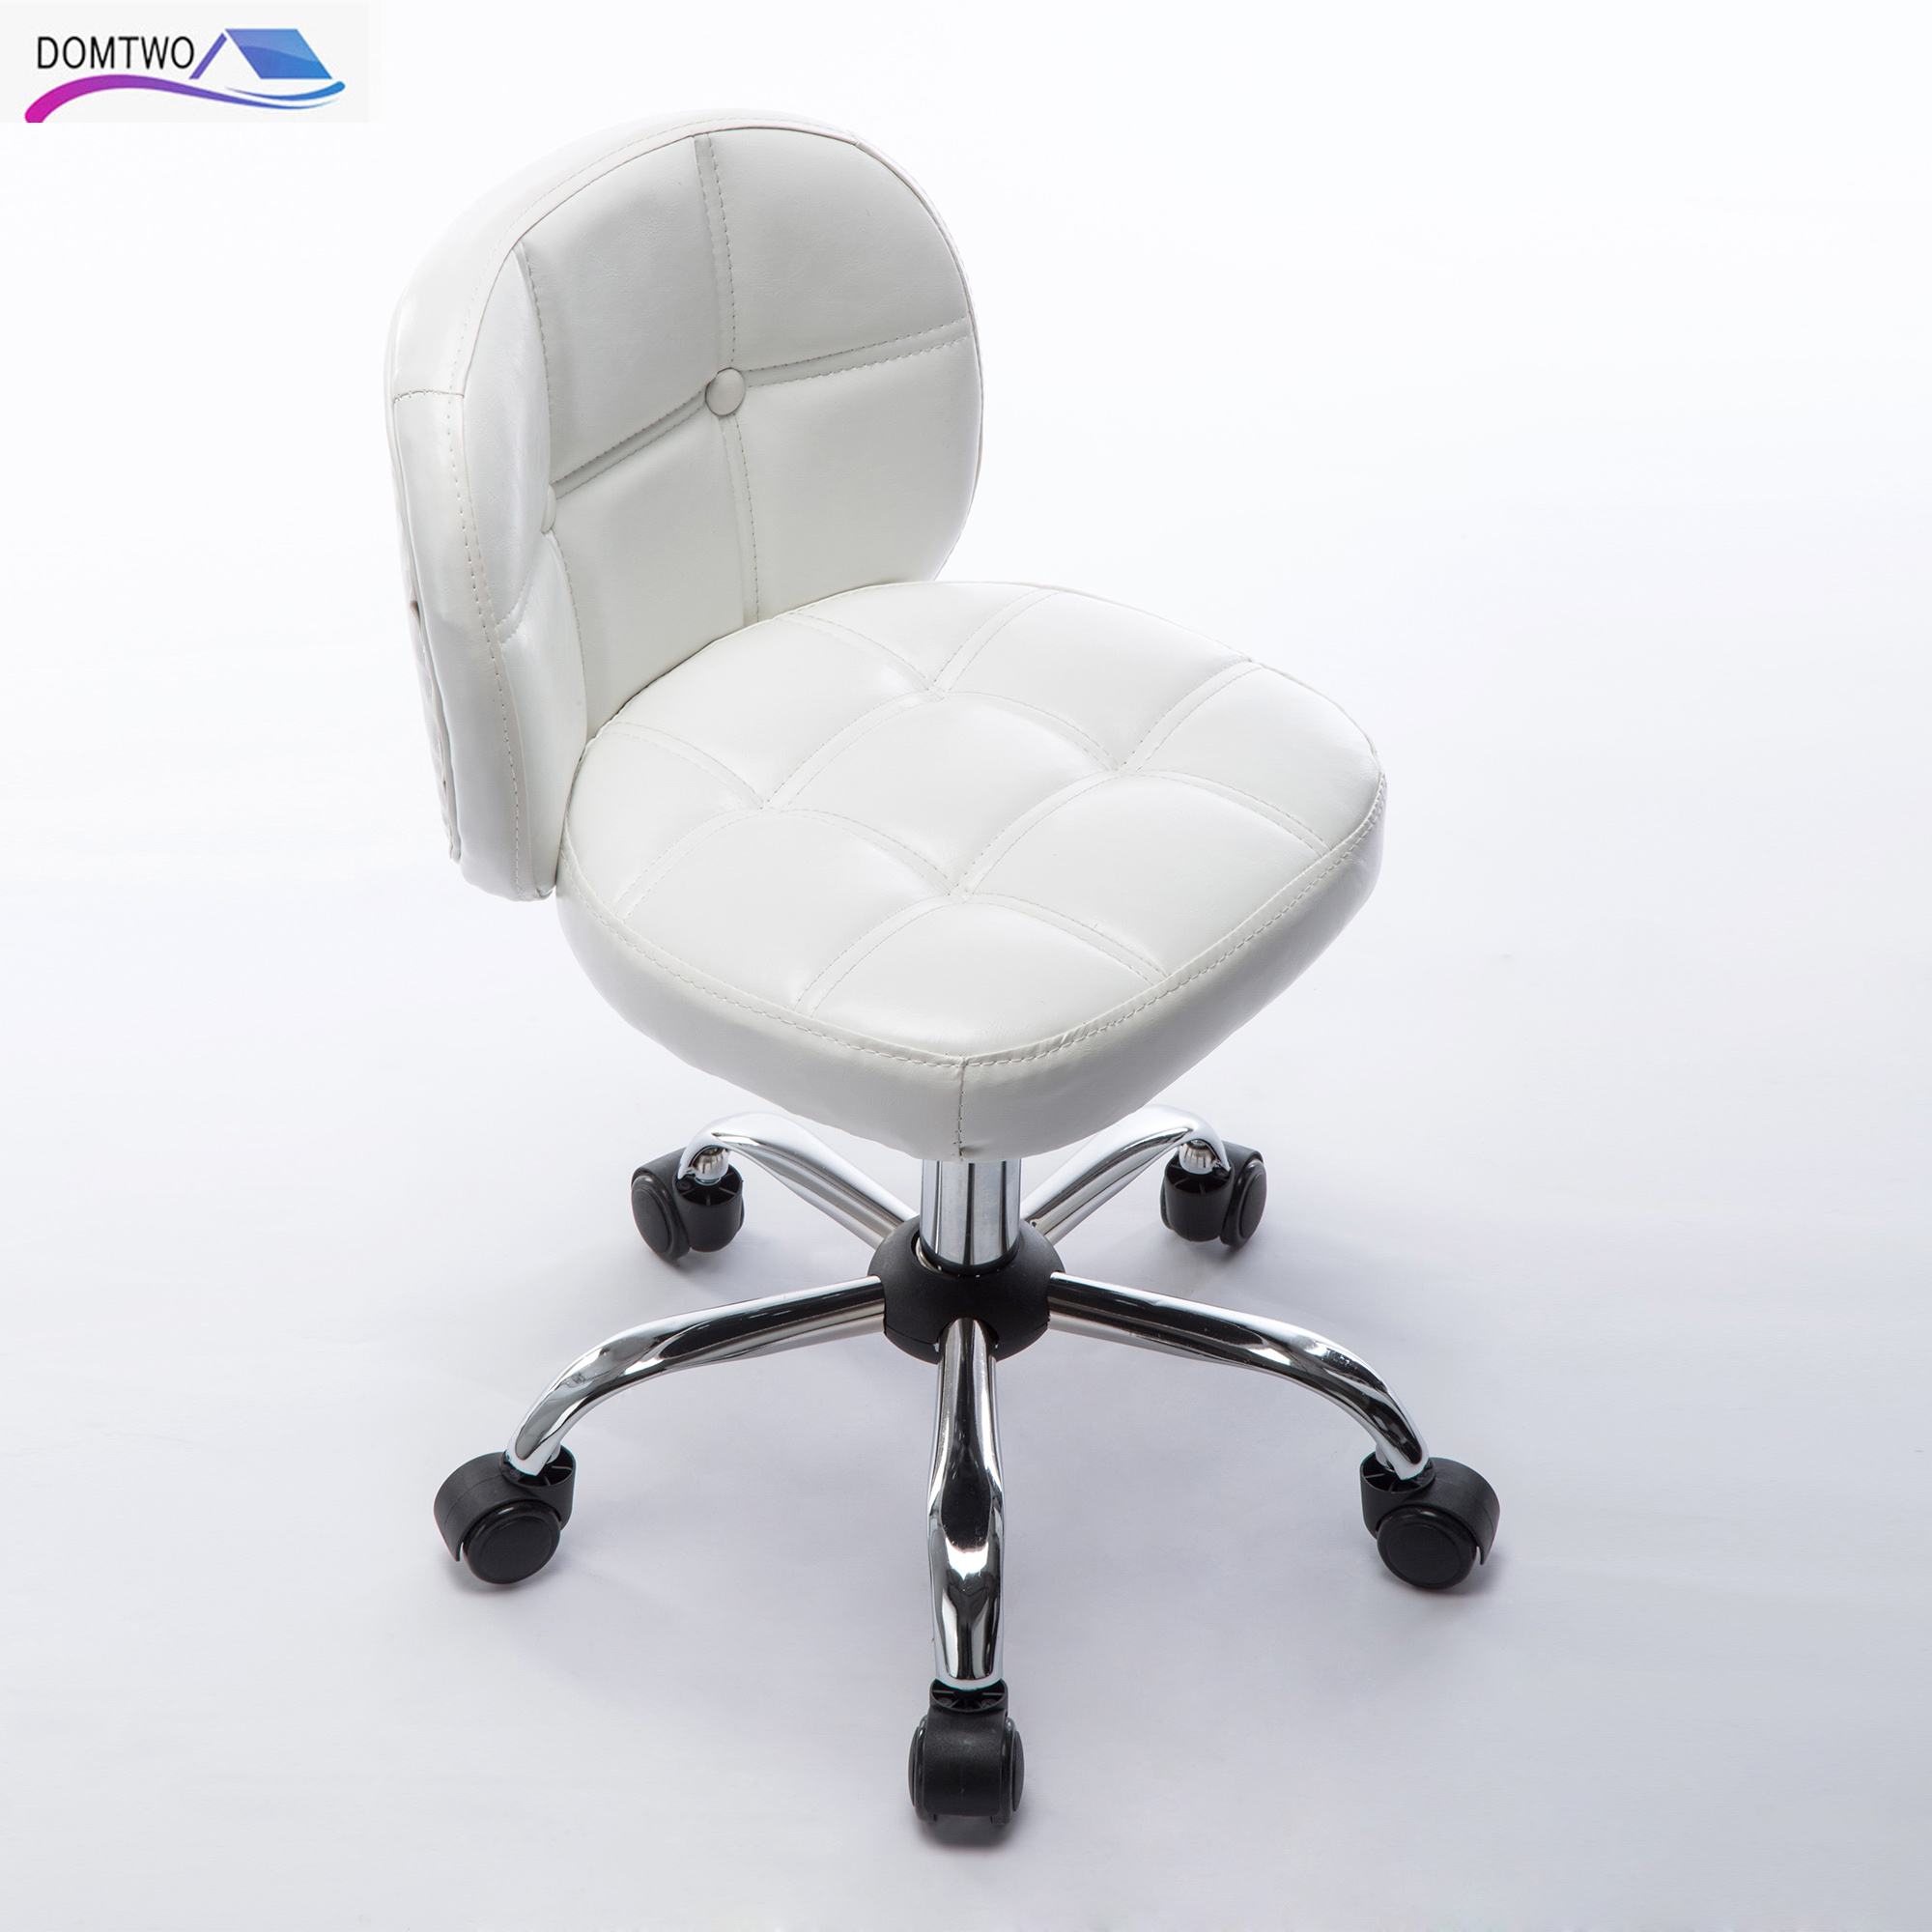 bar stool computer chair home small with backrest swivel chair coffee chair free shipping